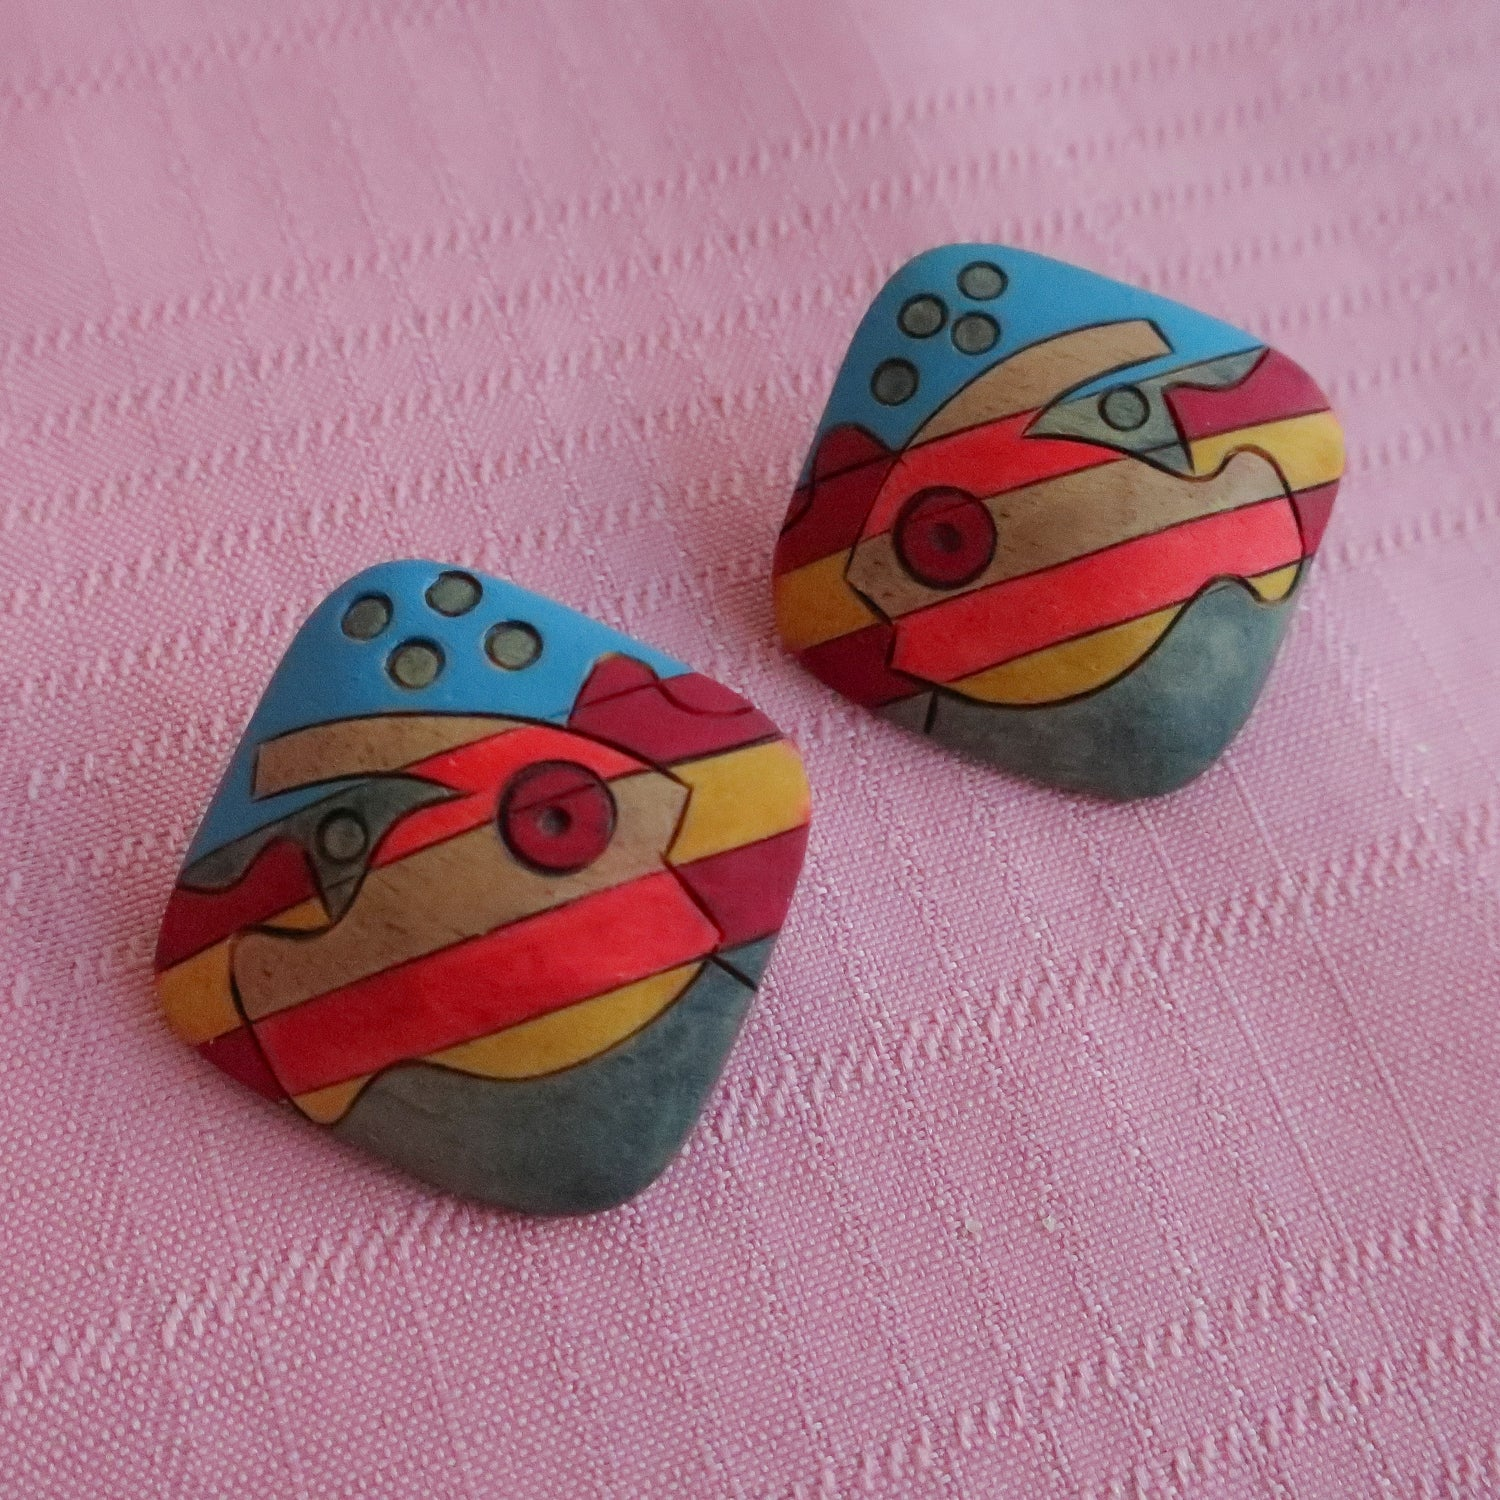 "Second Room Vintage Clothing. Vintage square wood studs, with bright hand painted tropical fish design. Earrings are 1.5"" square. Free North American shipping on all orders."